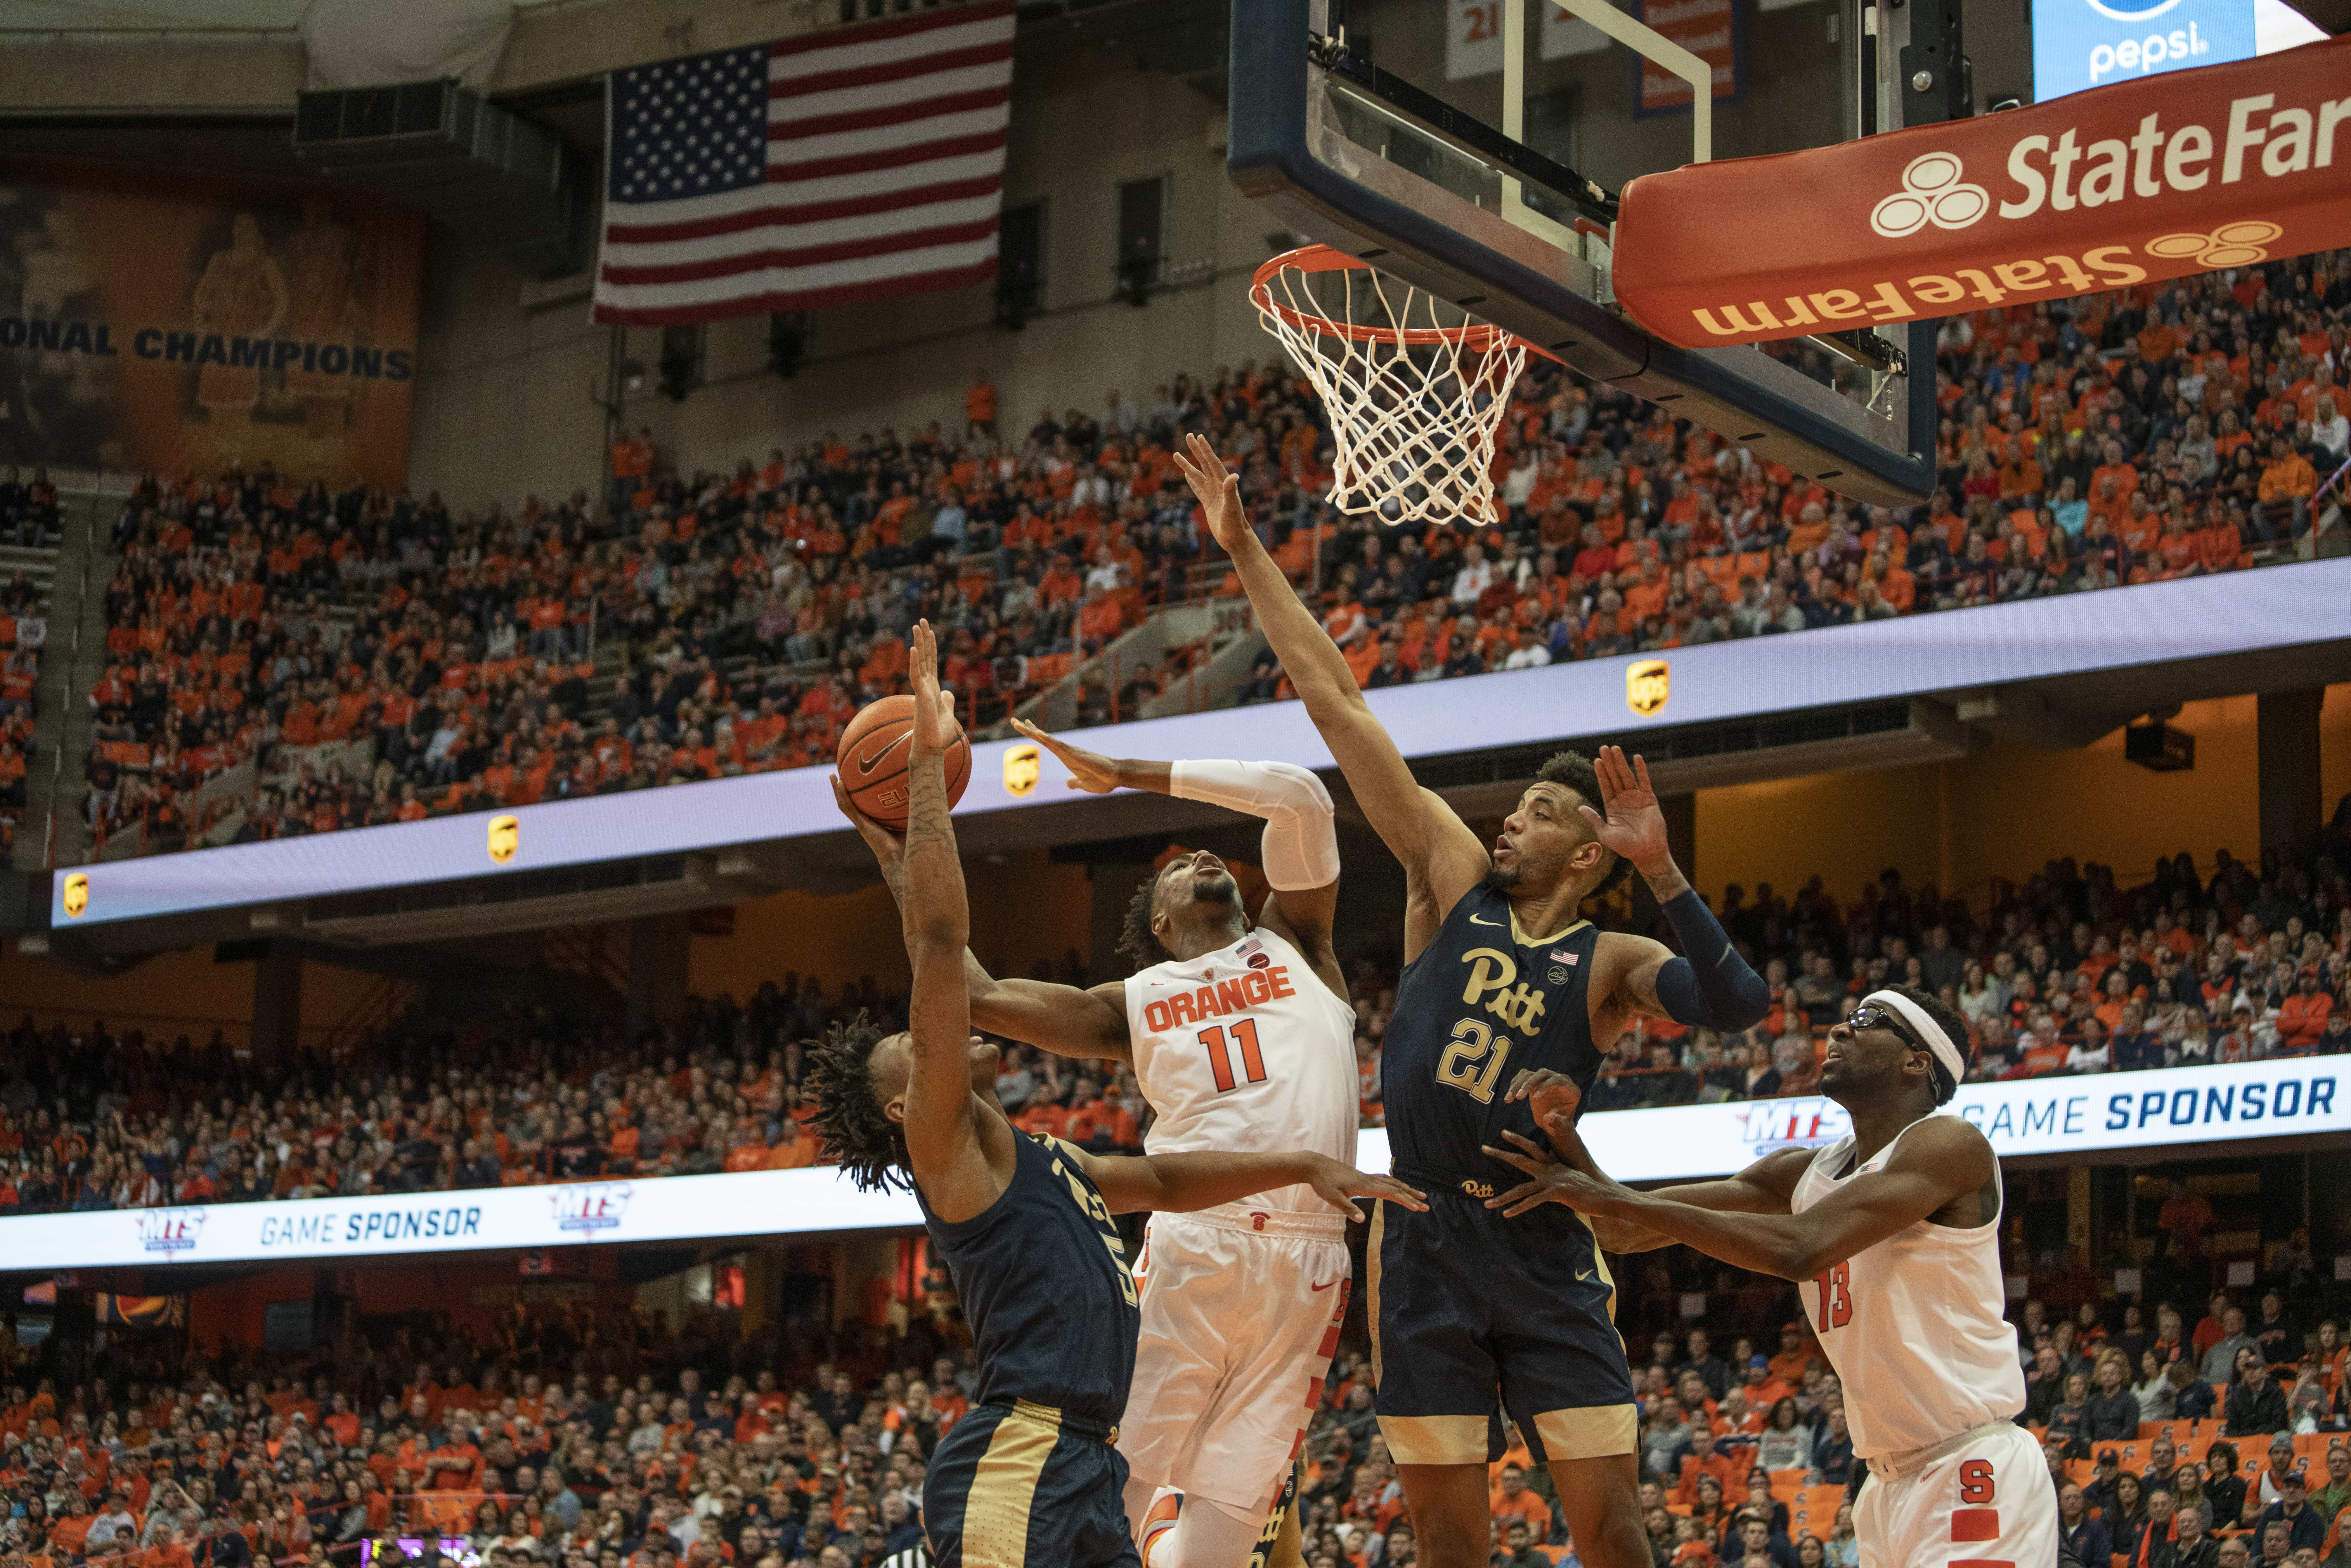 SU vs Pitt men's basketball.